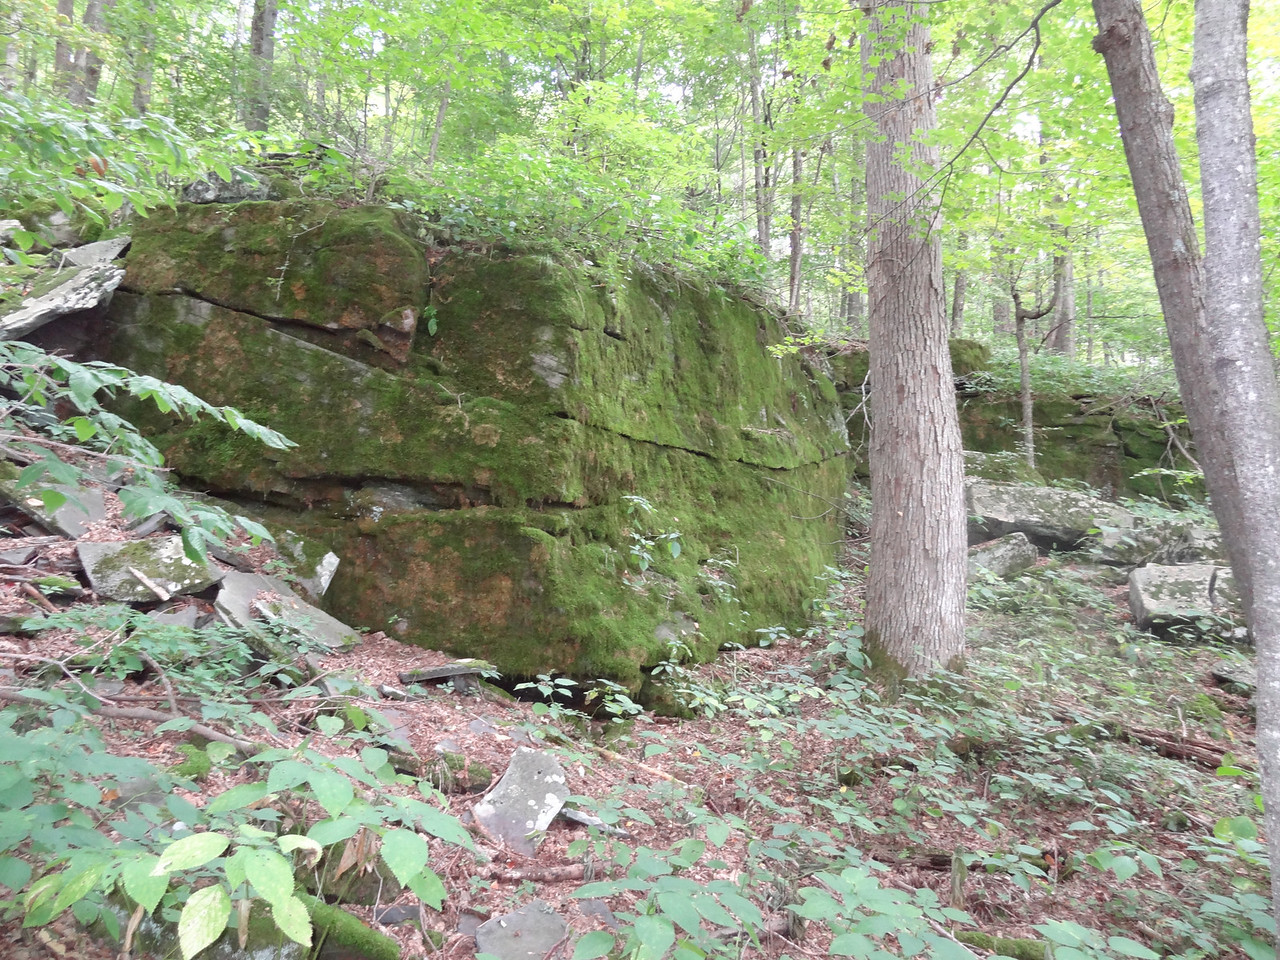 A mossy rock early into the hike.